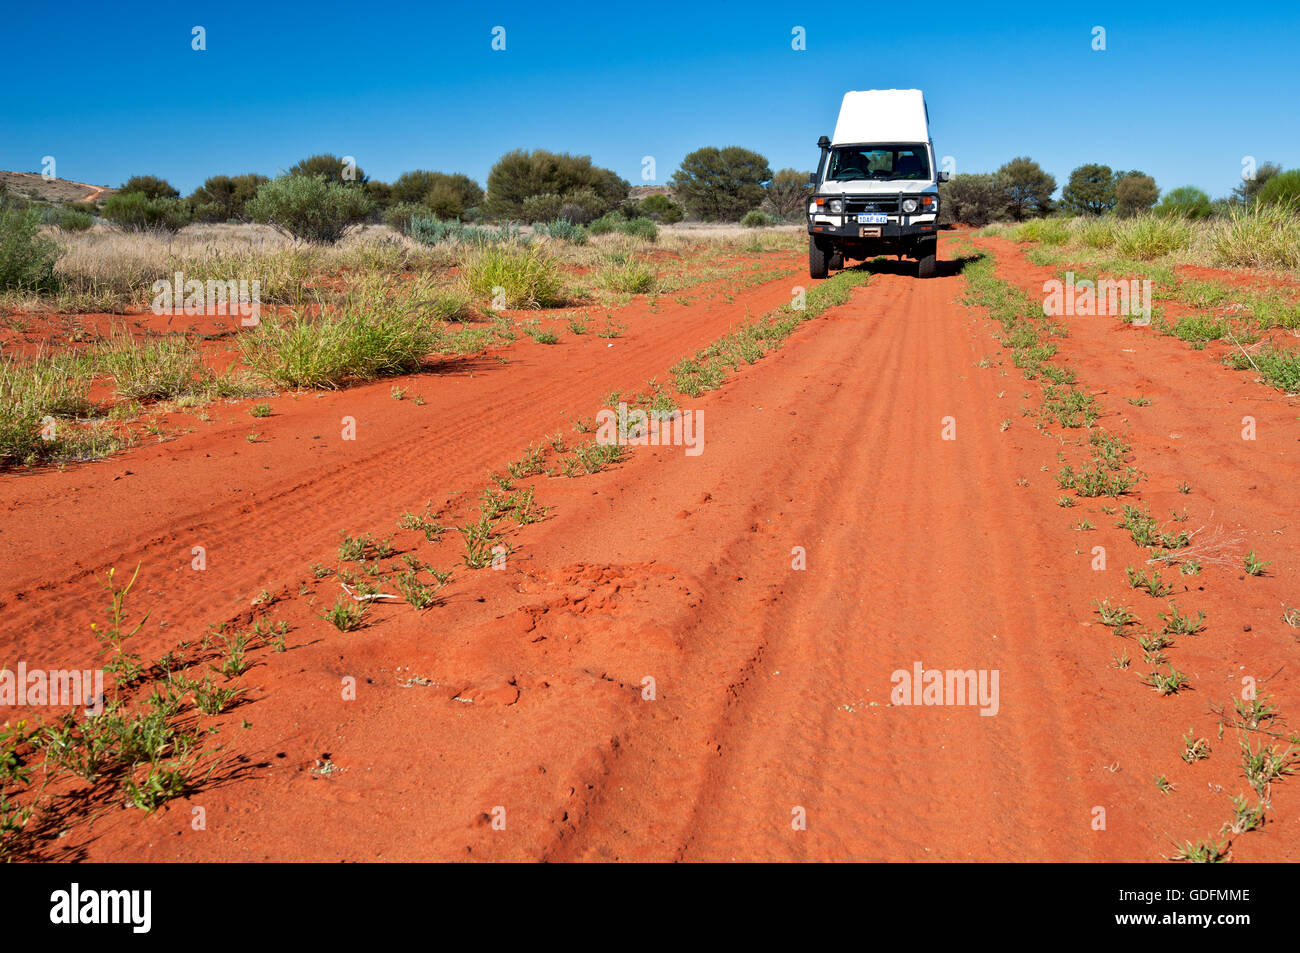 Typical australian desert track in the Red Centre. - Stock Image